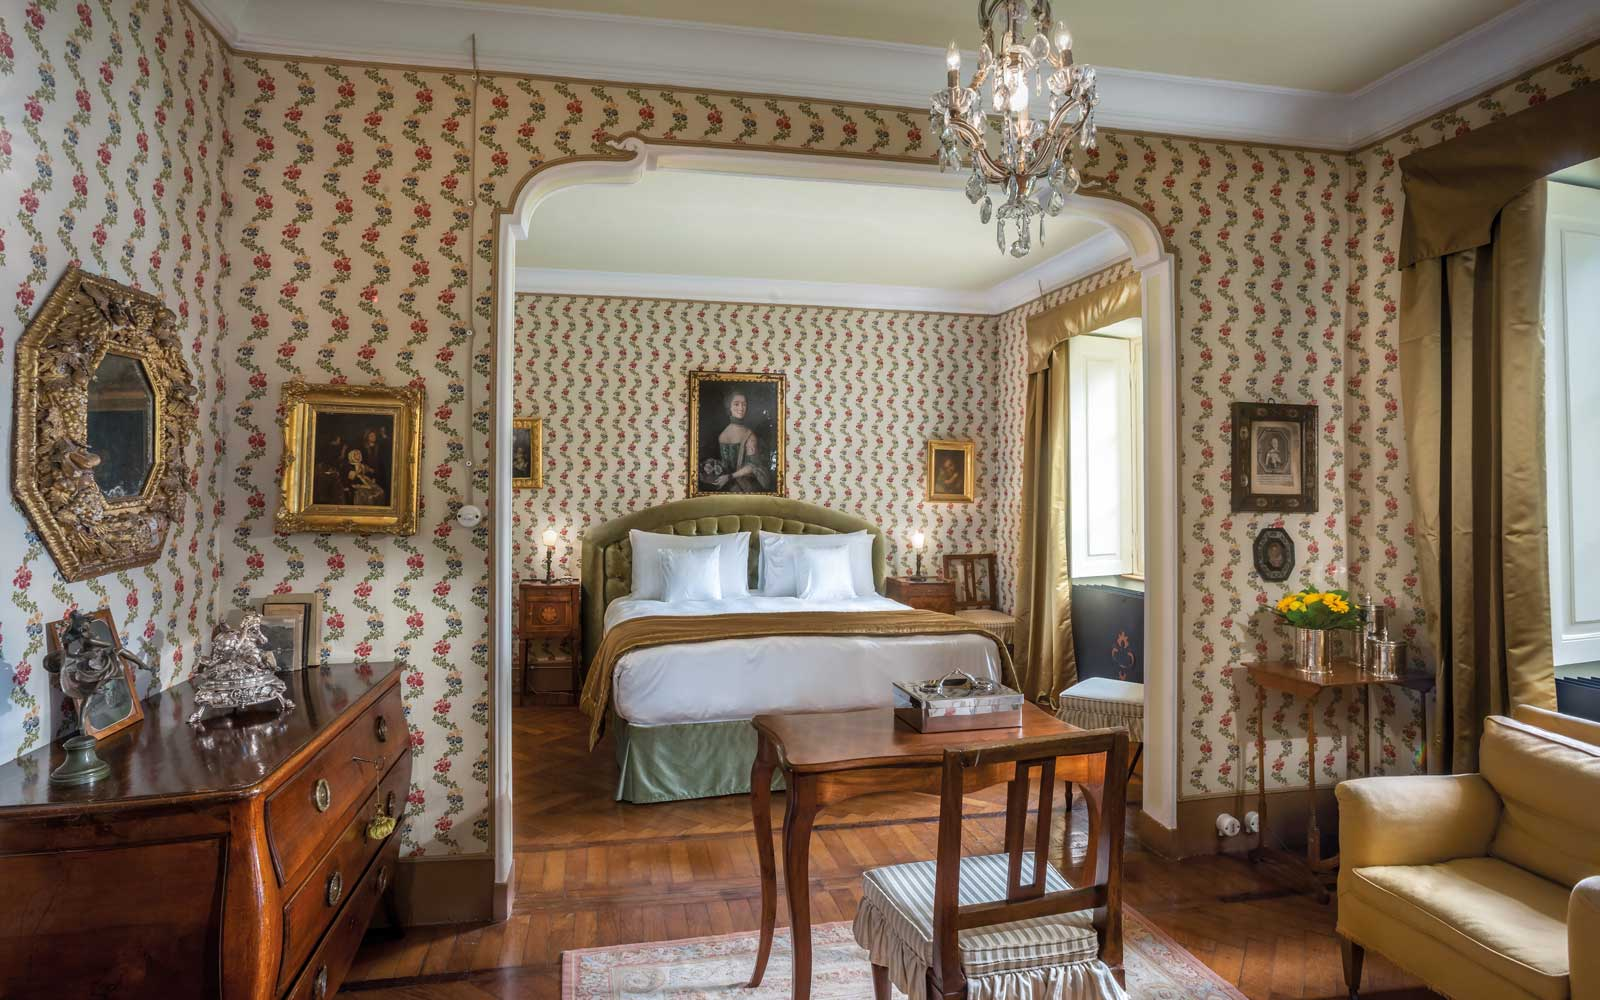 Andrea Suite at the Villa Sola Cabiati, Lake Como, Italy